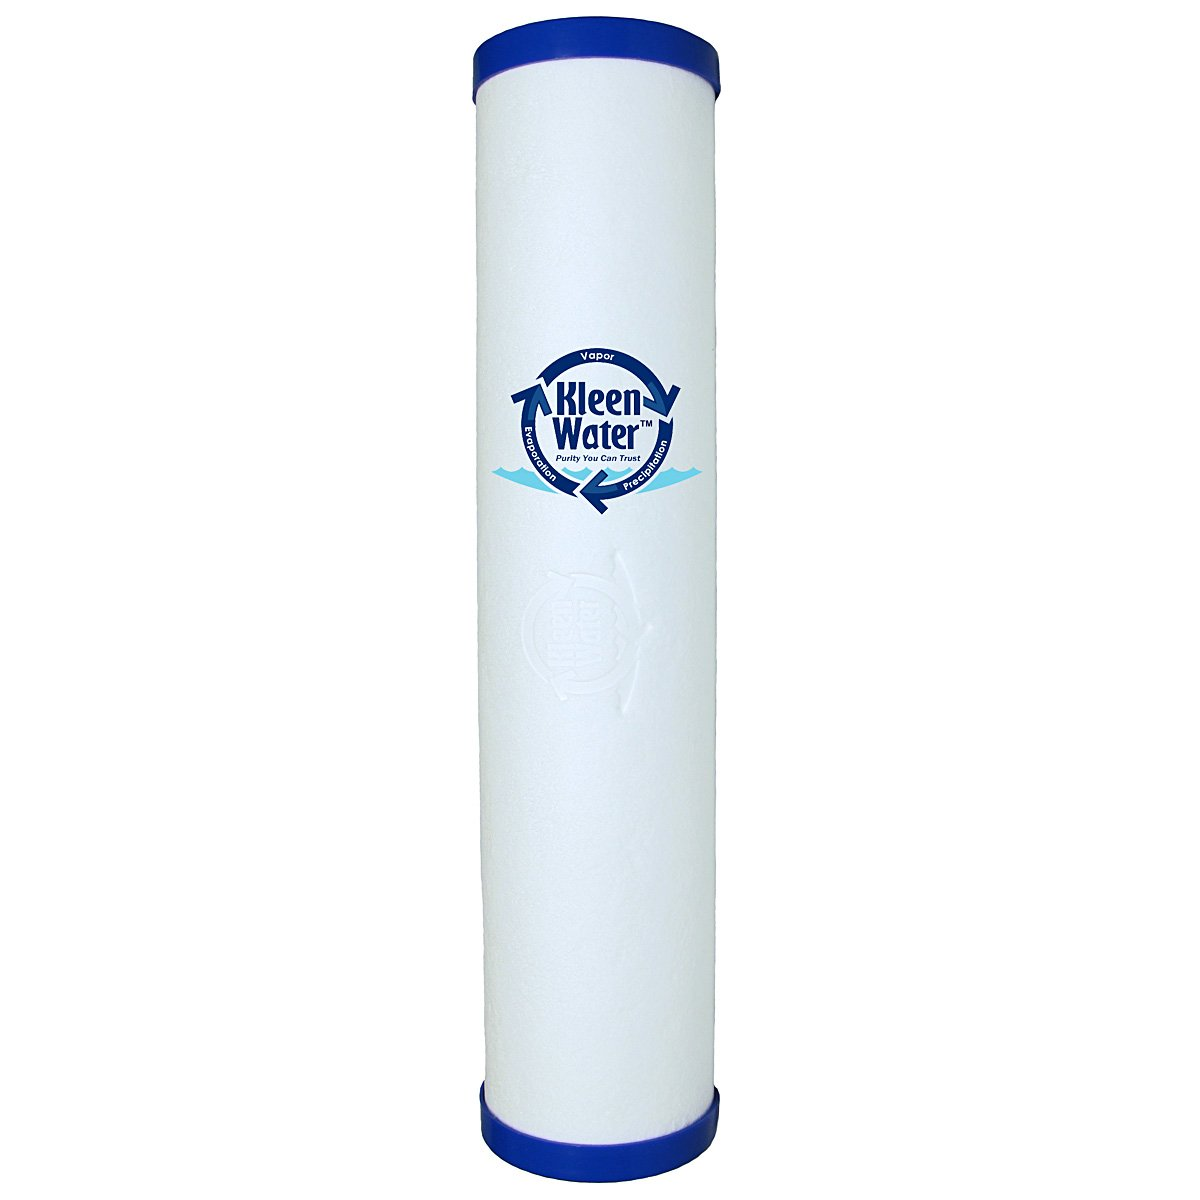 whole house water filter cartridge. Amazon.com: Lead Removal Whole House Water Filter System, KleenWater PWF4520LRDS Dual Stage Chlorine Chemical And Sediment Filtration System: Cartridge